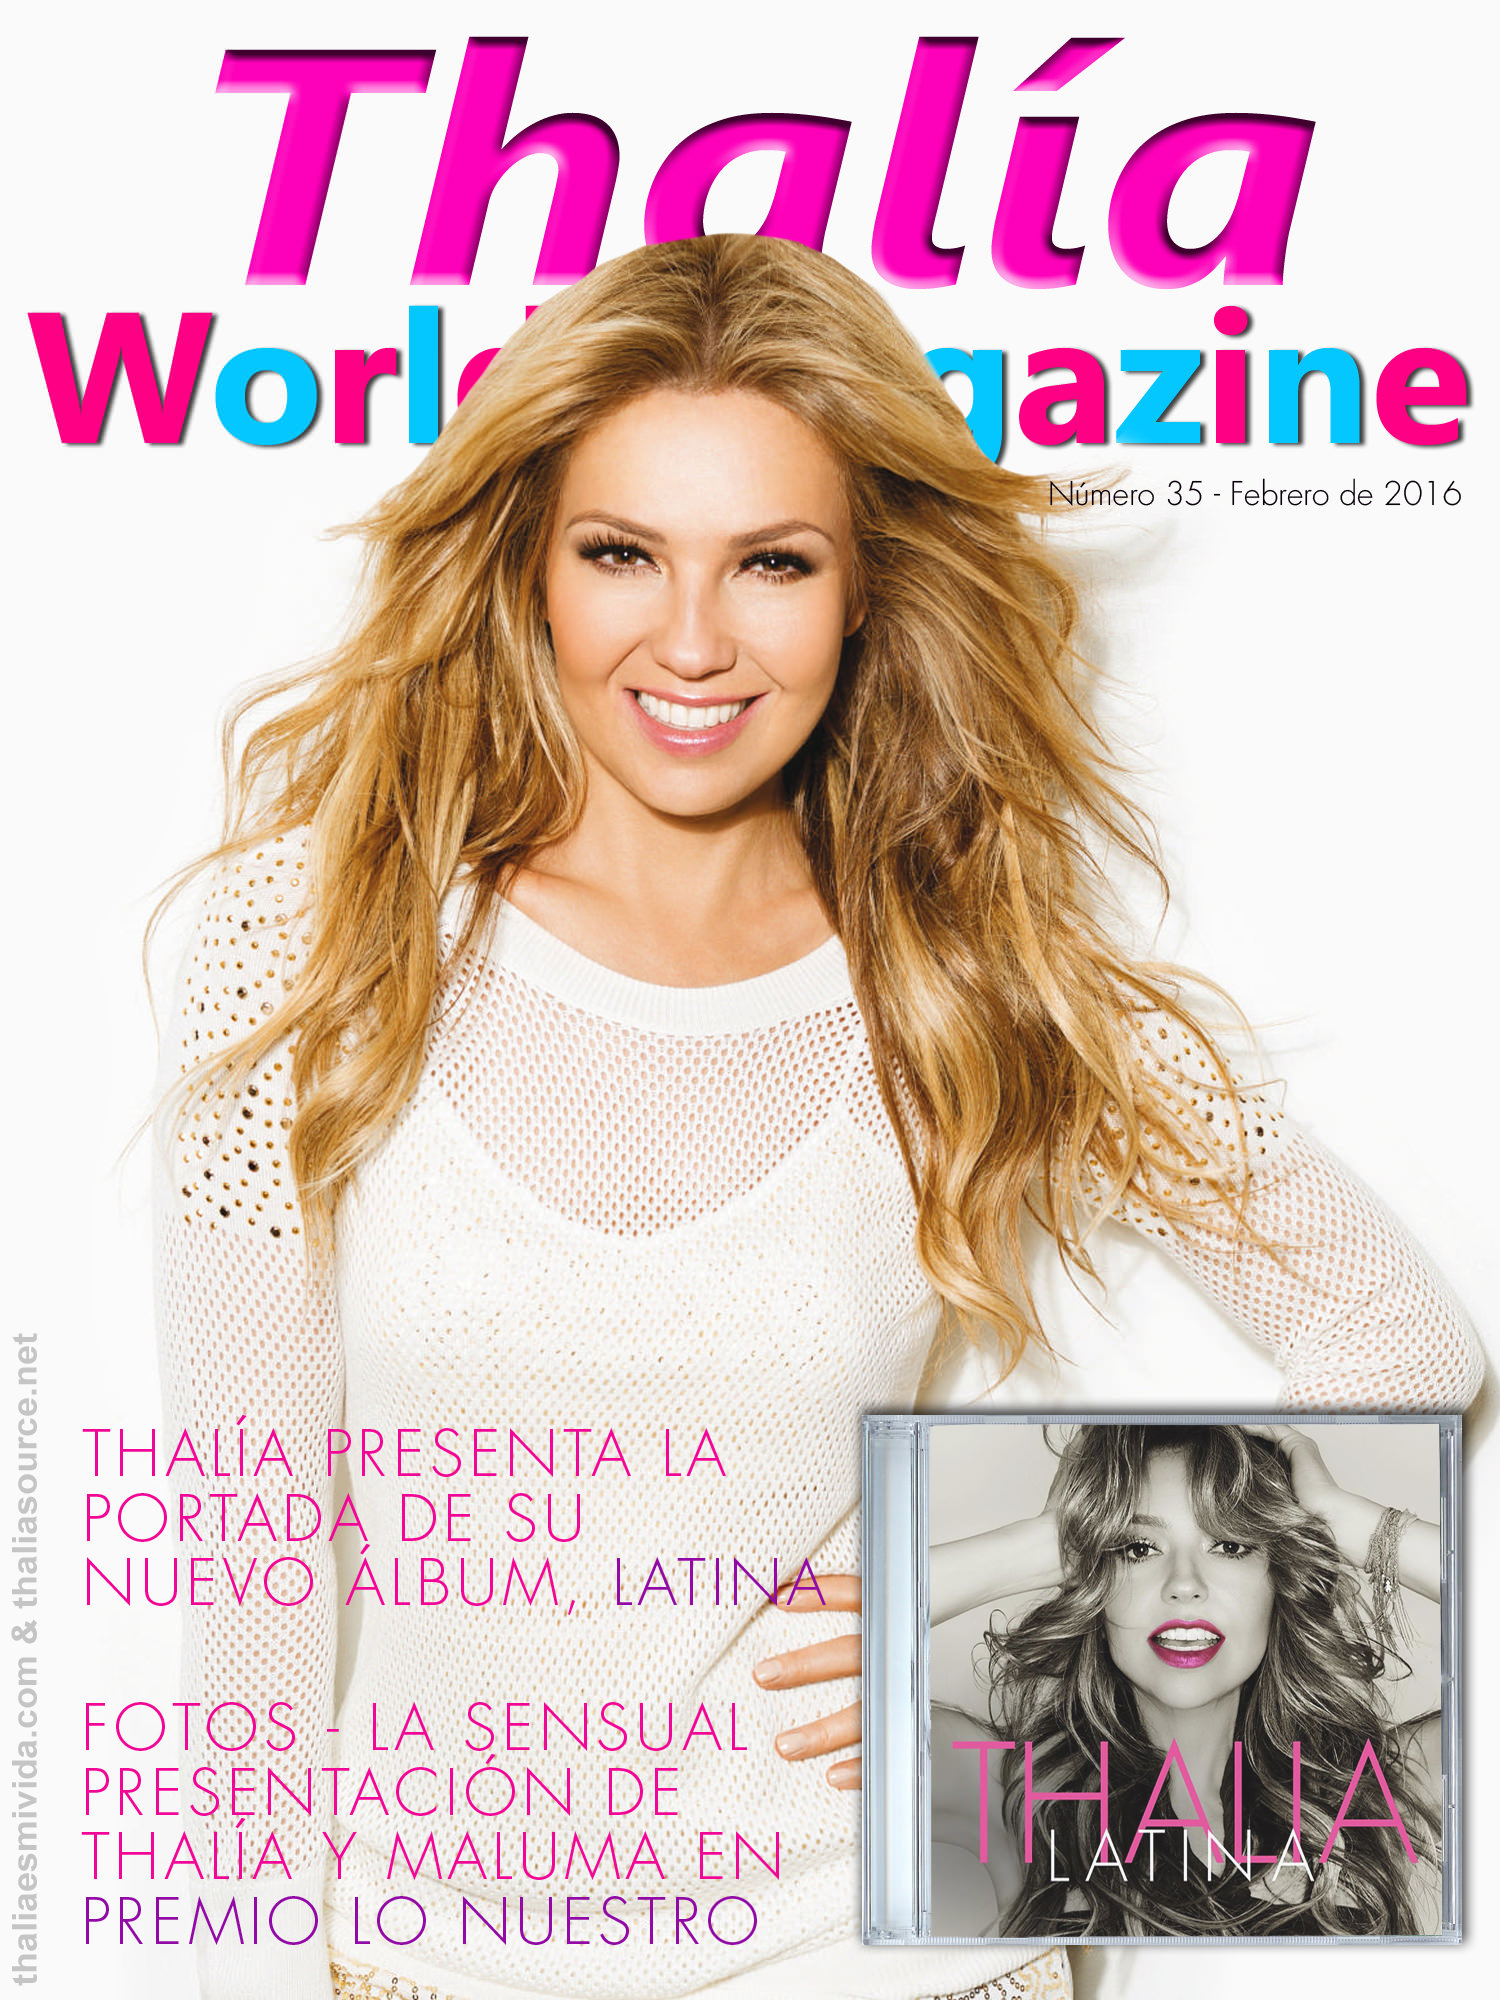 Thalia World Magazine 35